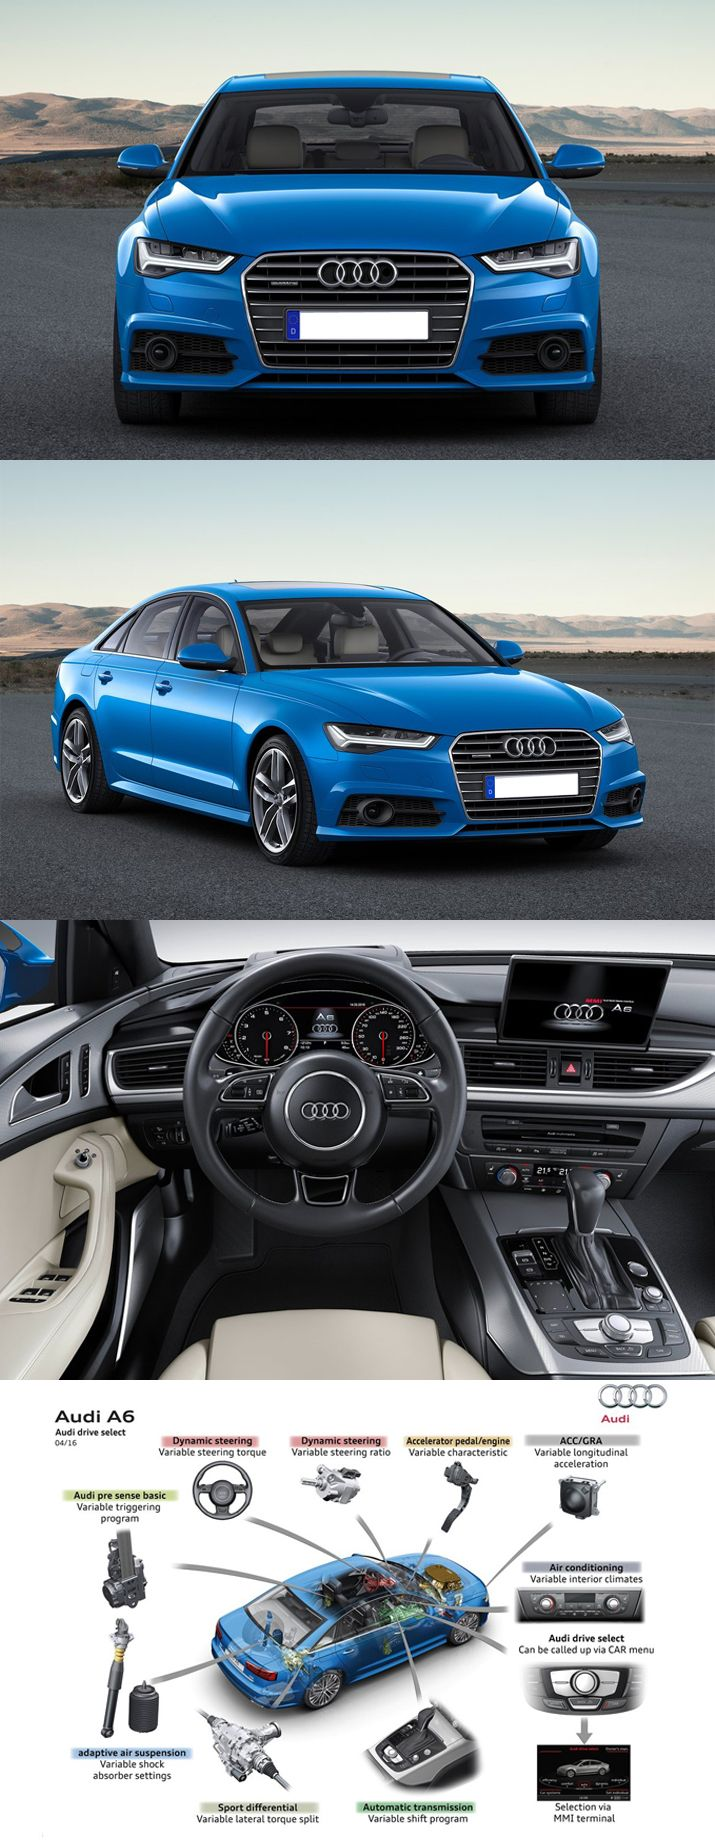 Classy refined and spacious audi a6 audi a6 tdi https